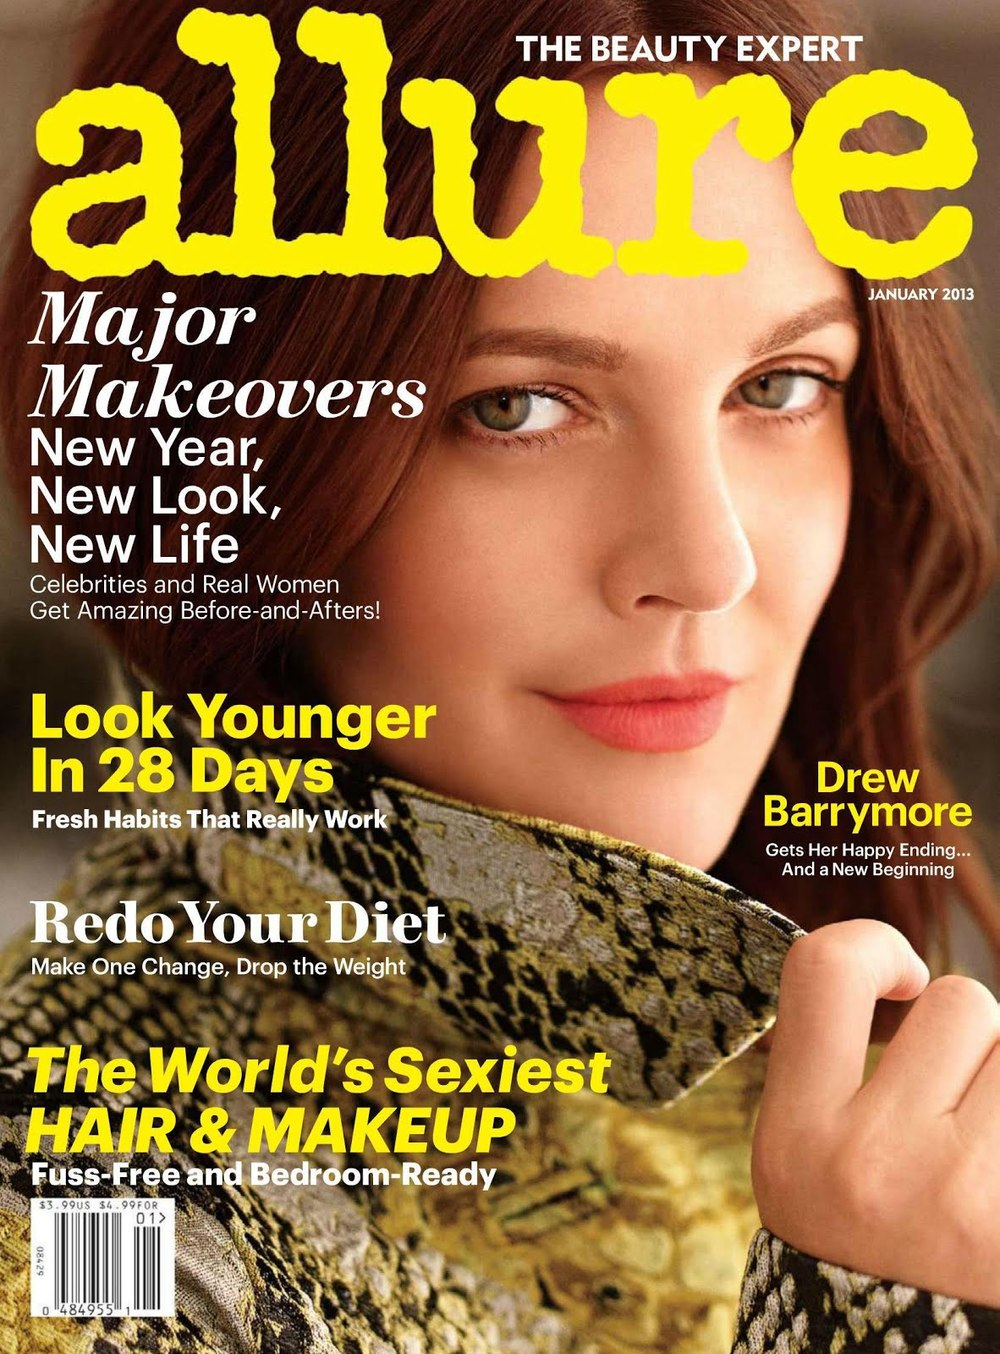 Allure_January2013_DrewBarrymore_01.jpg